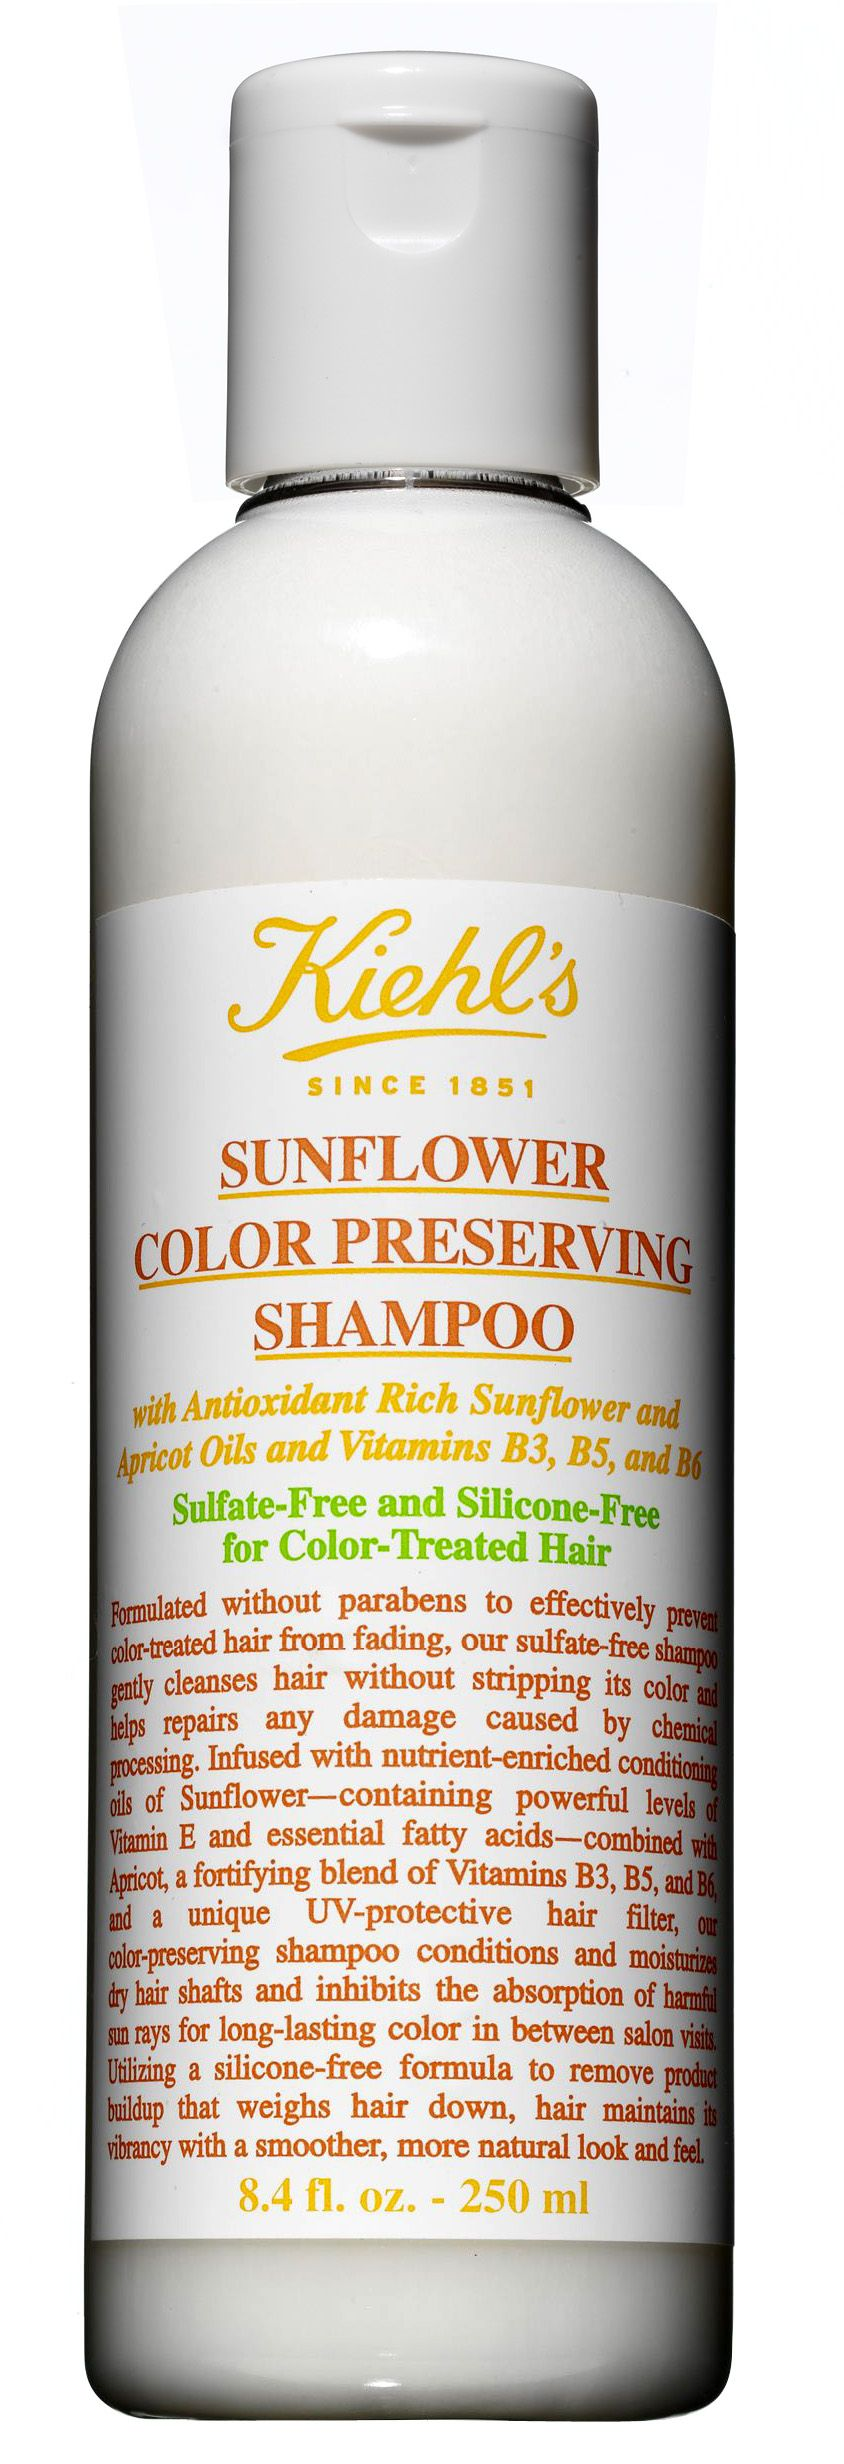 Sunflower Color Preserving Shampoo 250ml